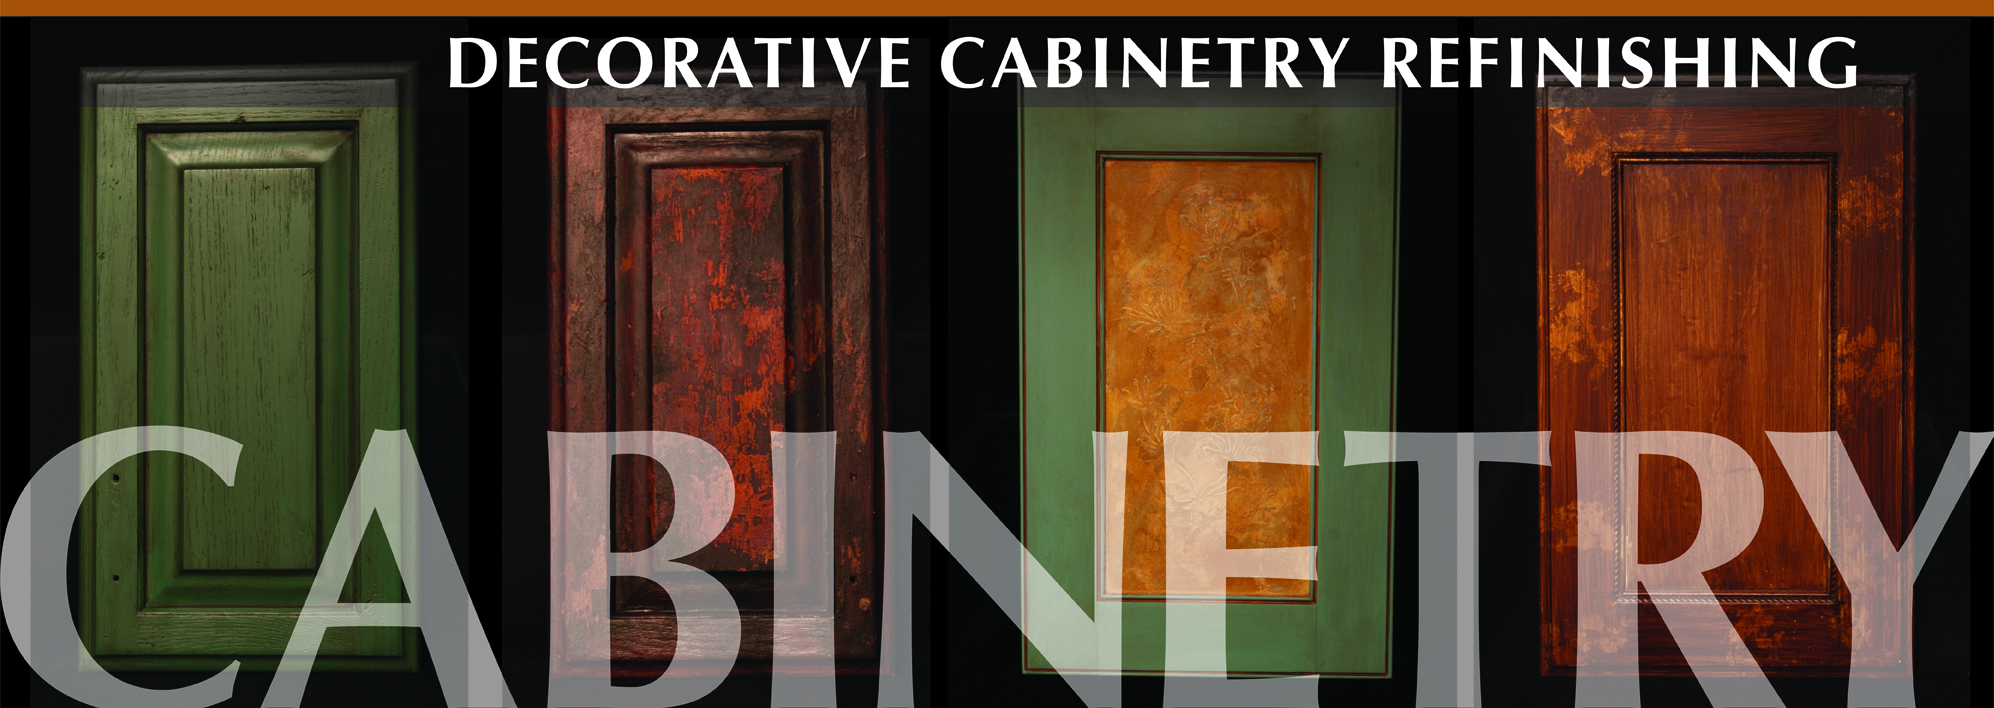 5RDFC-Cabinetry.jpg